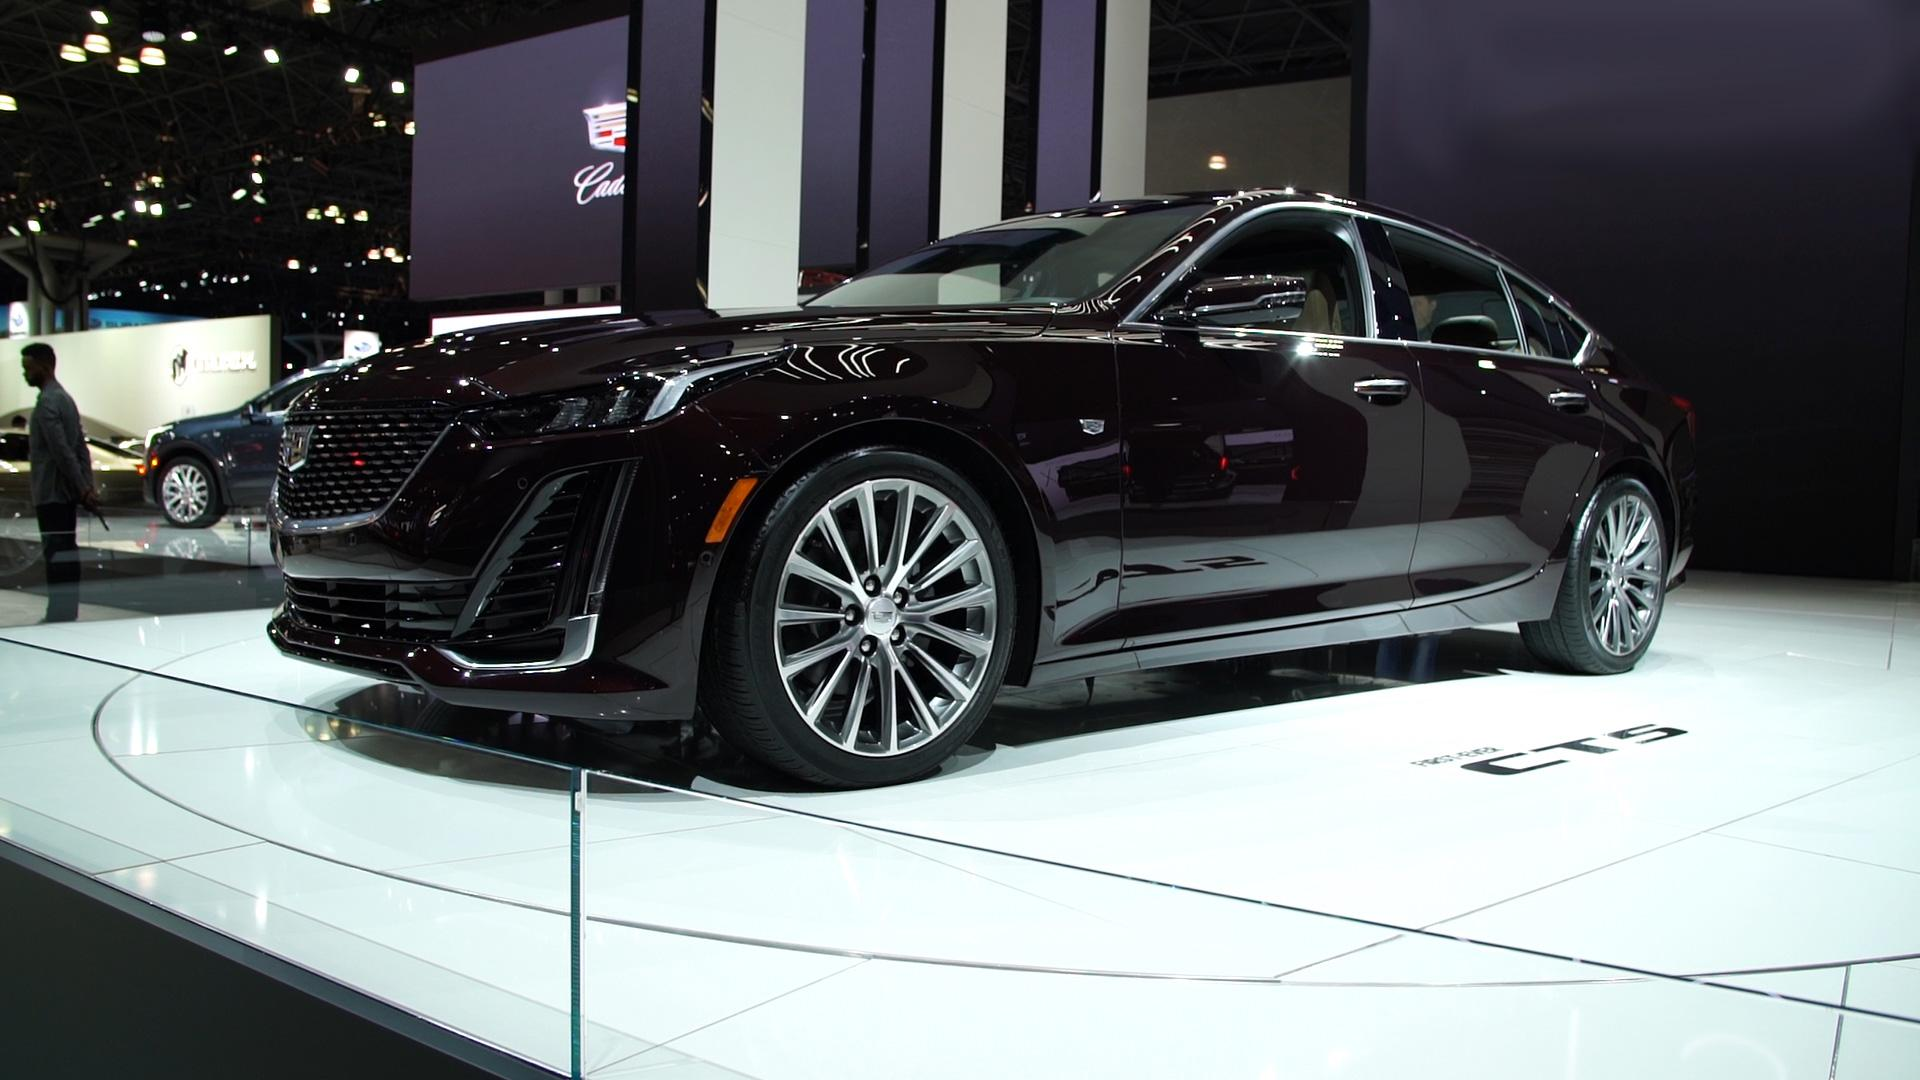 Stylish 2020 Cadillac Ct5 And Ct5 V Unveiled Consumer Reports